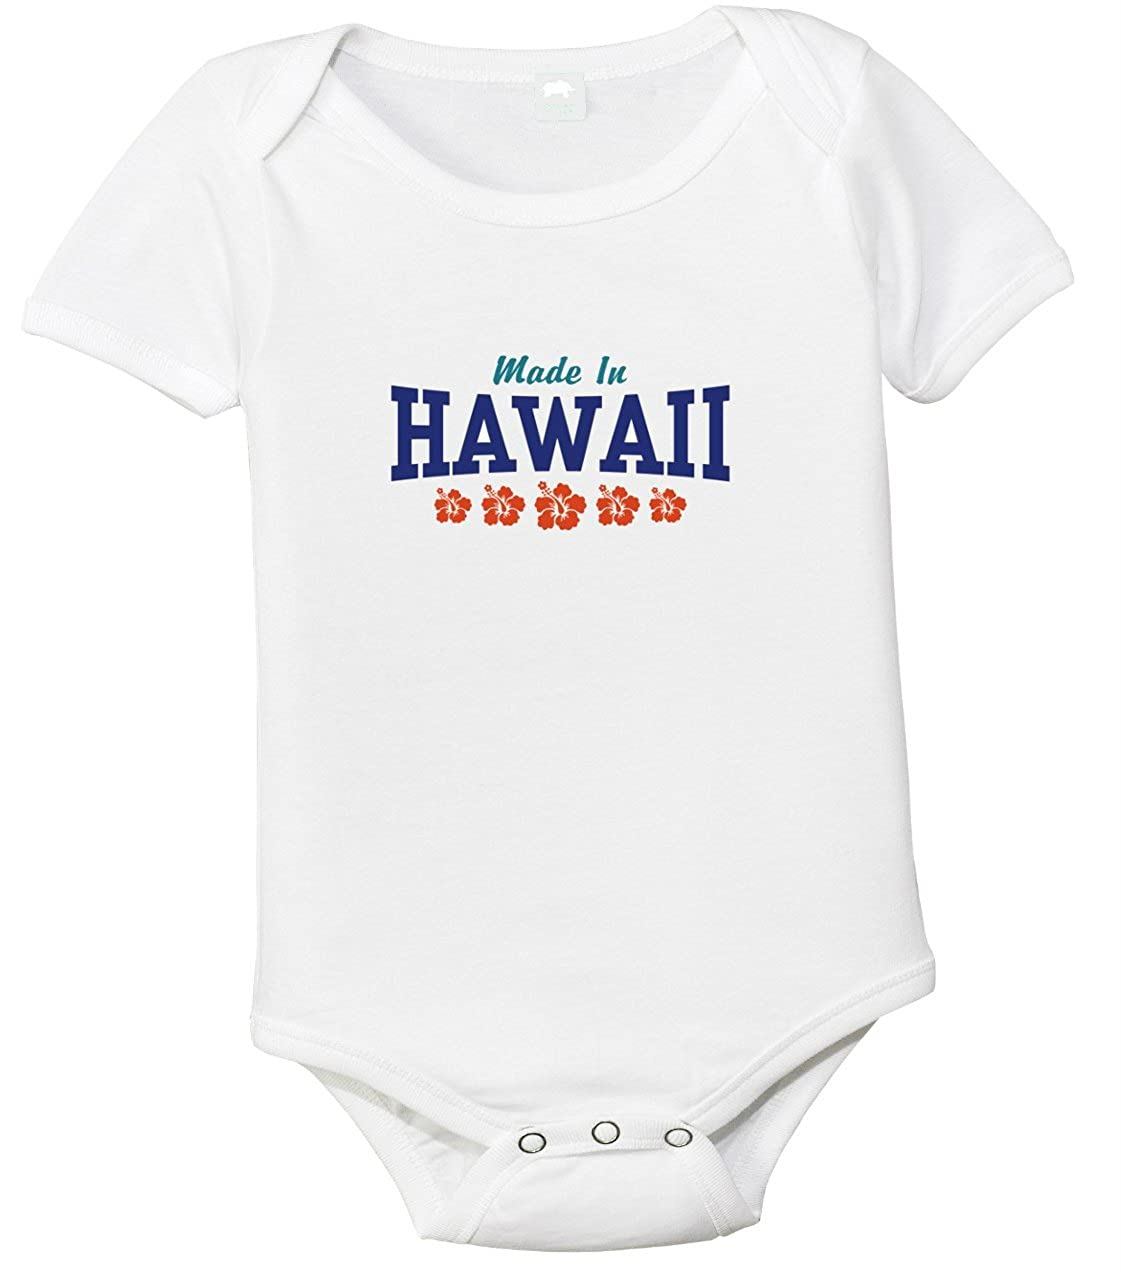 726d61657c4f Amazon.com: Made in Hawaii Baby One-piece/Bodysuit: Clothing